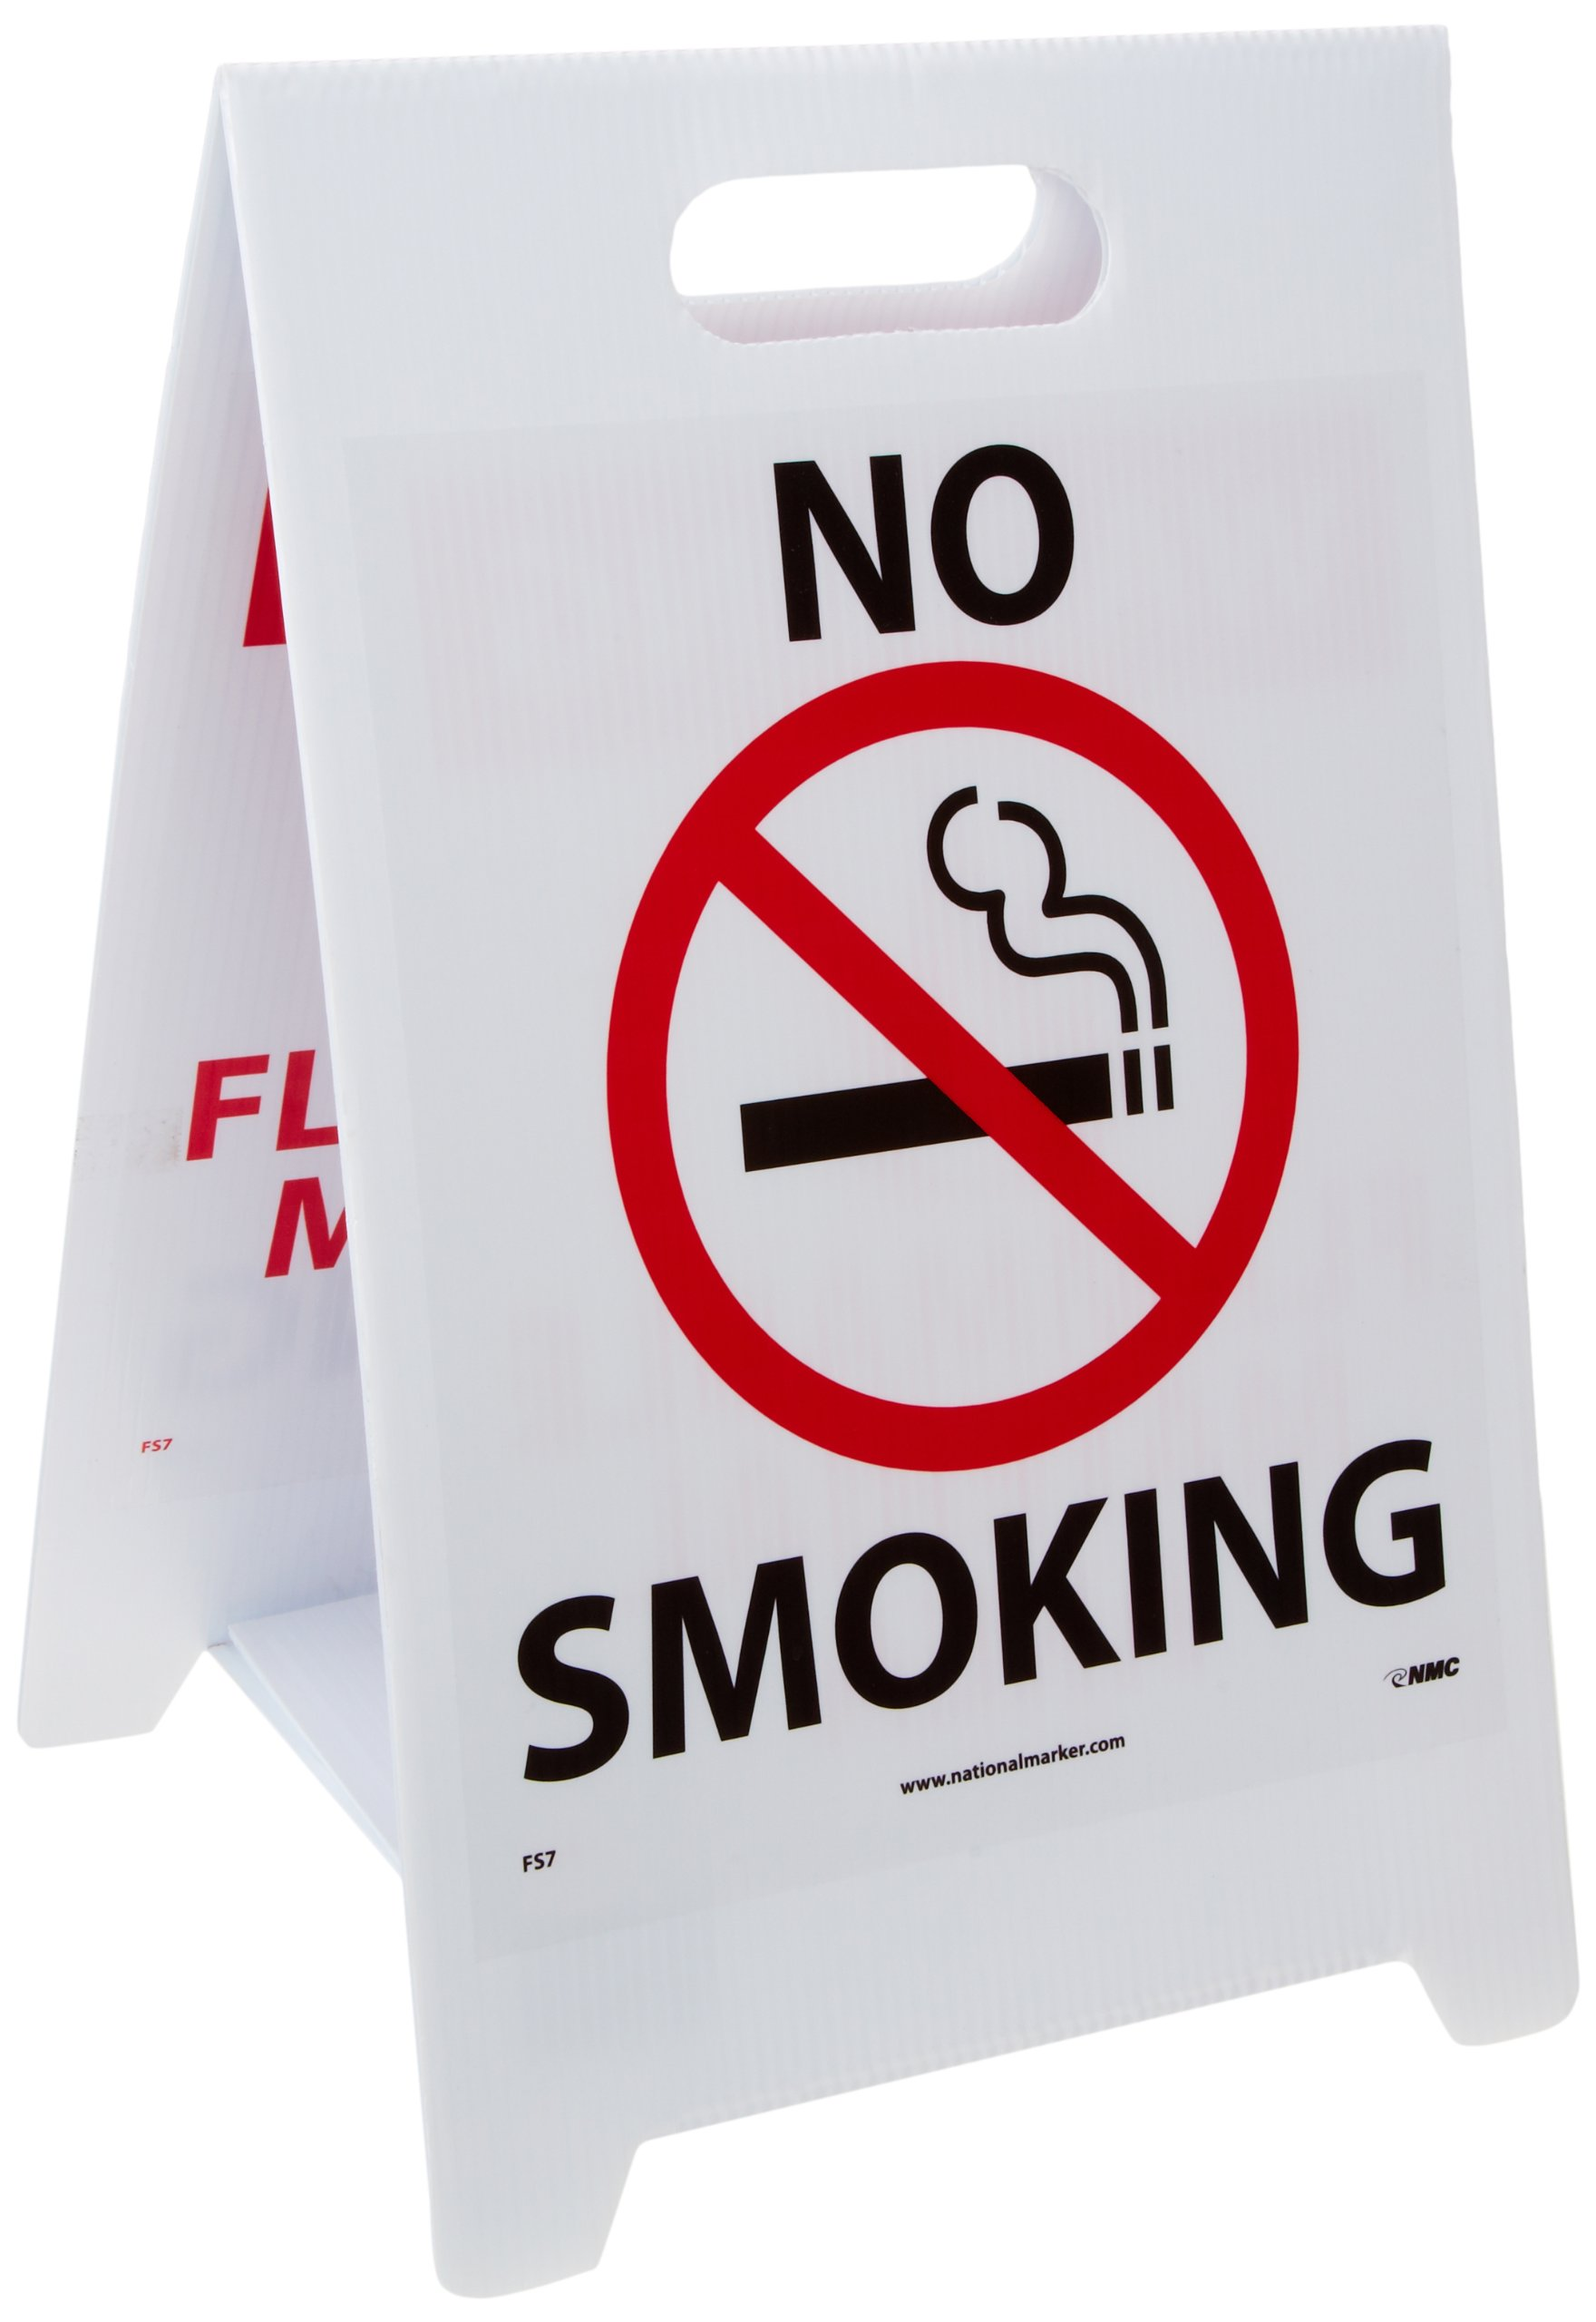 """NMC FS7 Double Sided Floor Sign, Legend """"NO SMOKING WARNING FLAMMABLE MATERIAL AREA"""" with Graphic, 12"""" Length x 20"""" Height, Coroplast, Black/Red on White"""